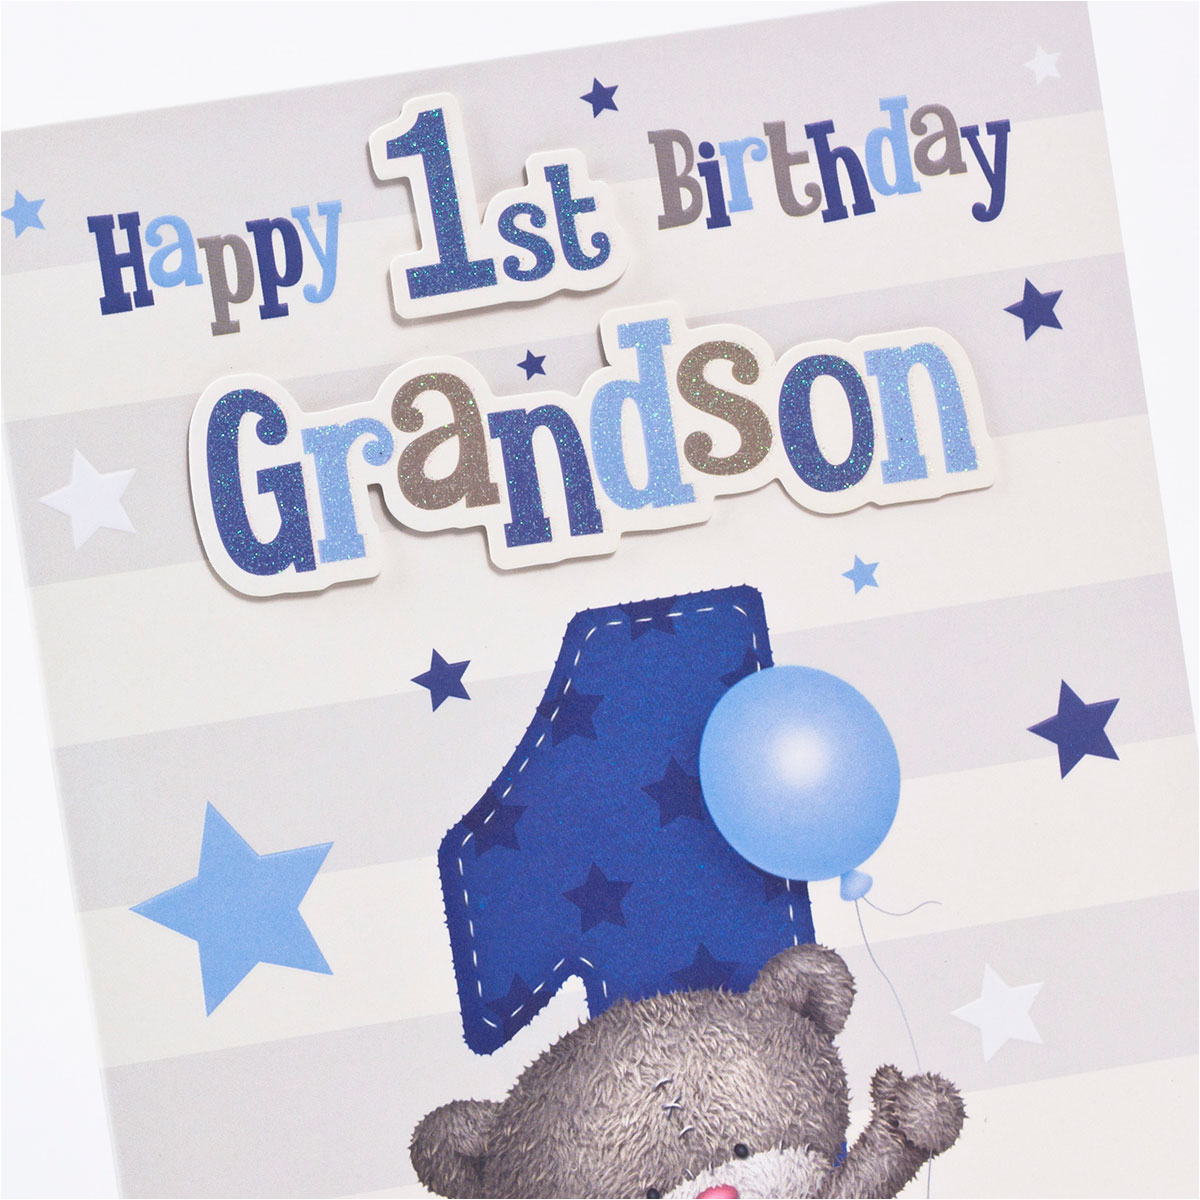 hugs 1st birthday card grandson only 1 49